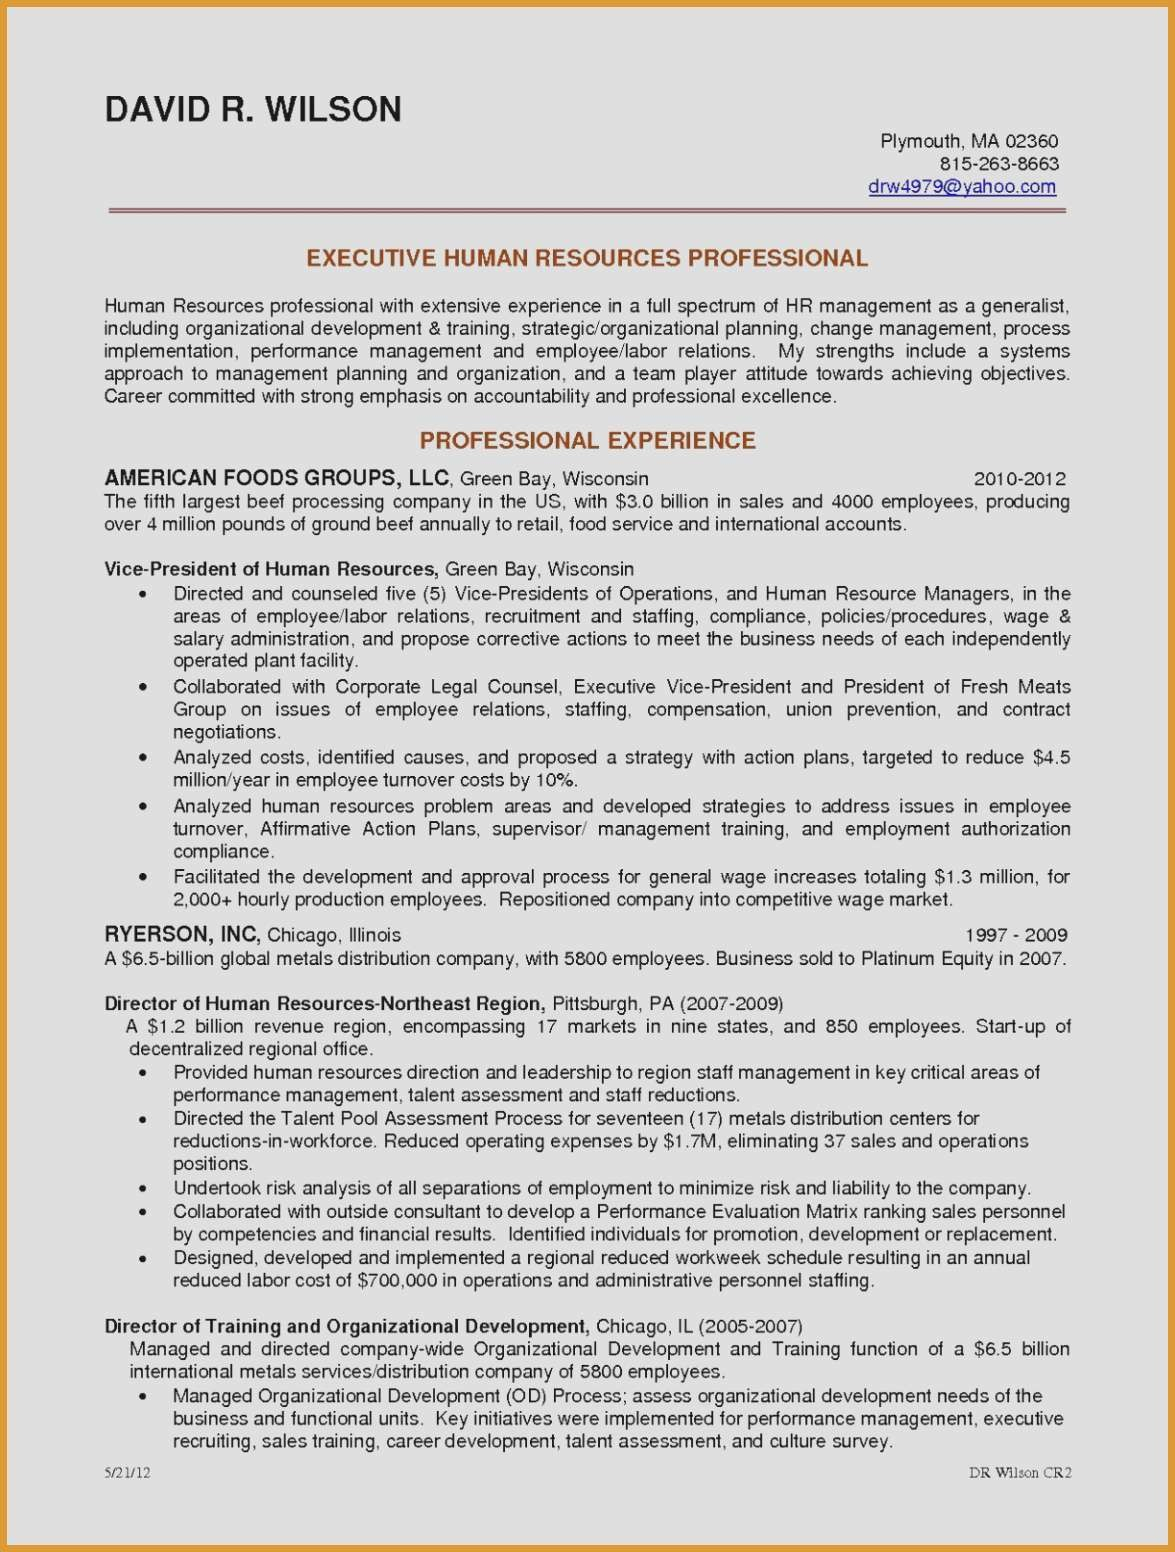 Resume Services Chicago - Executive Resume Writer Beautiful Executive Resume Writing Service